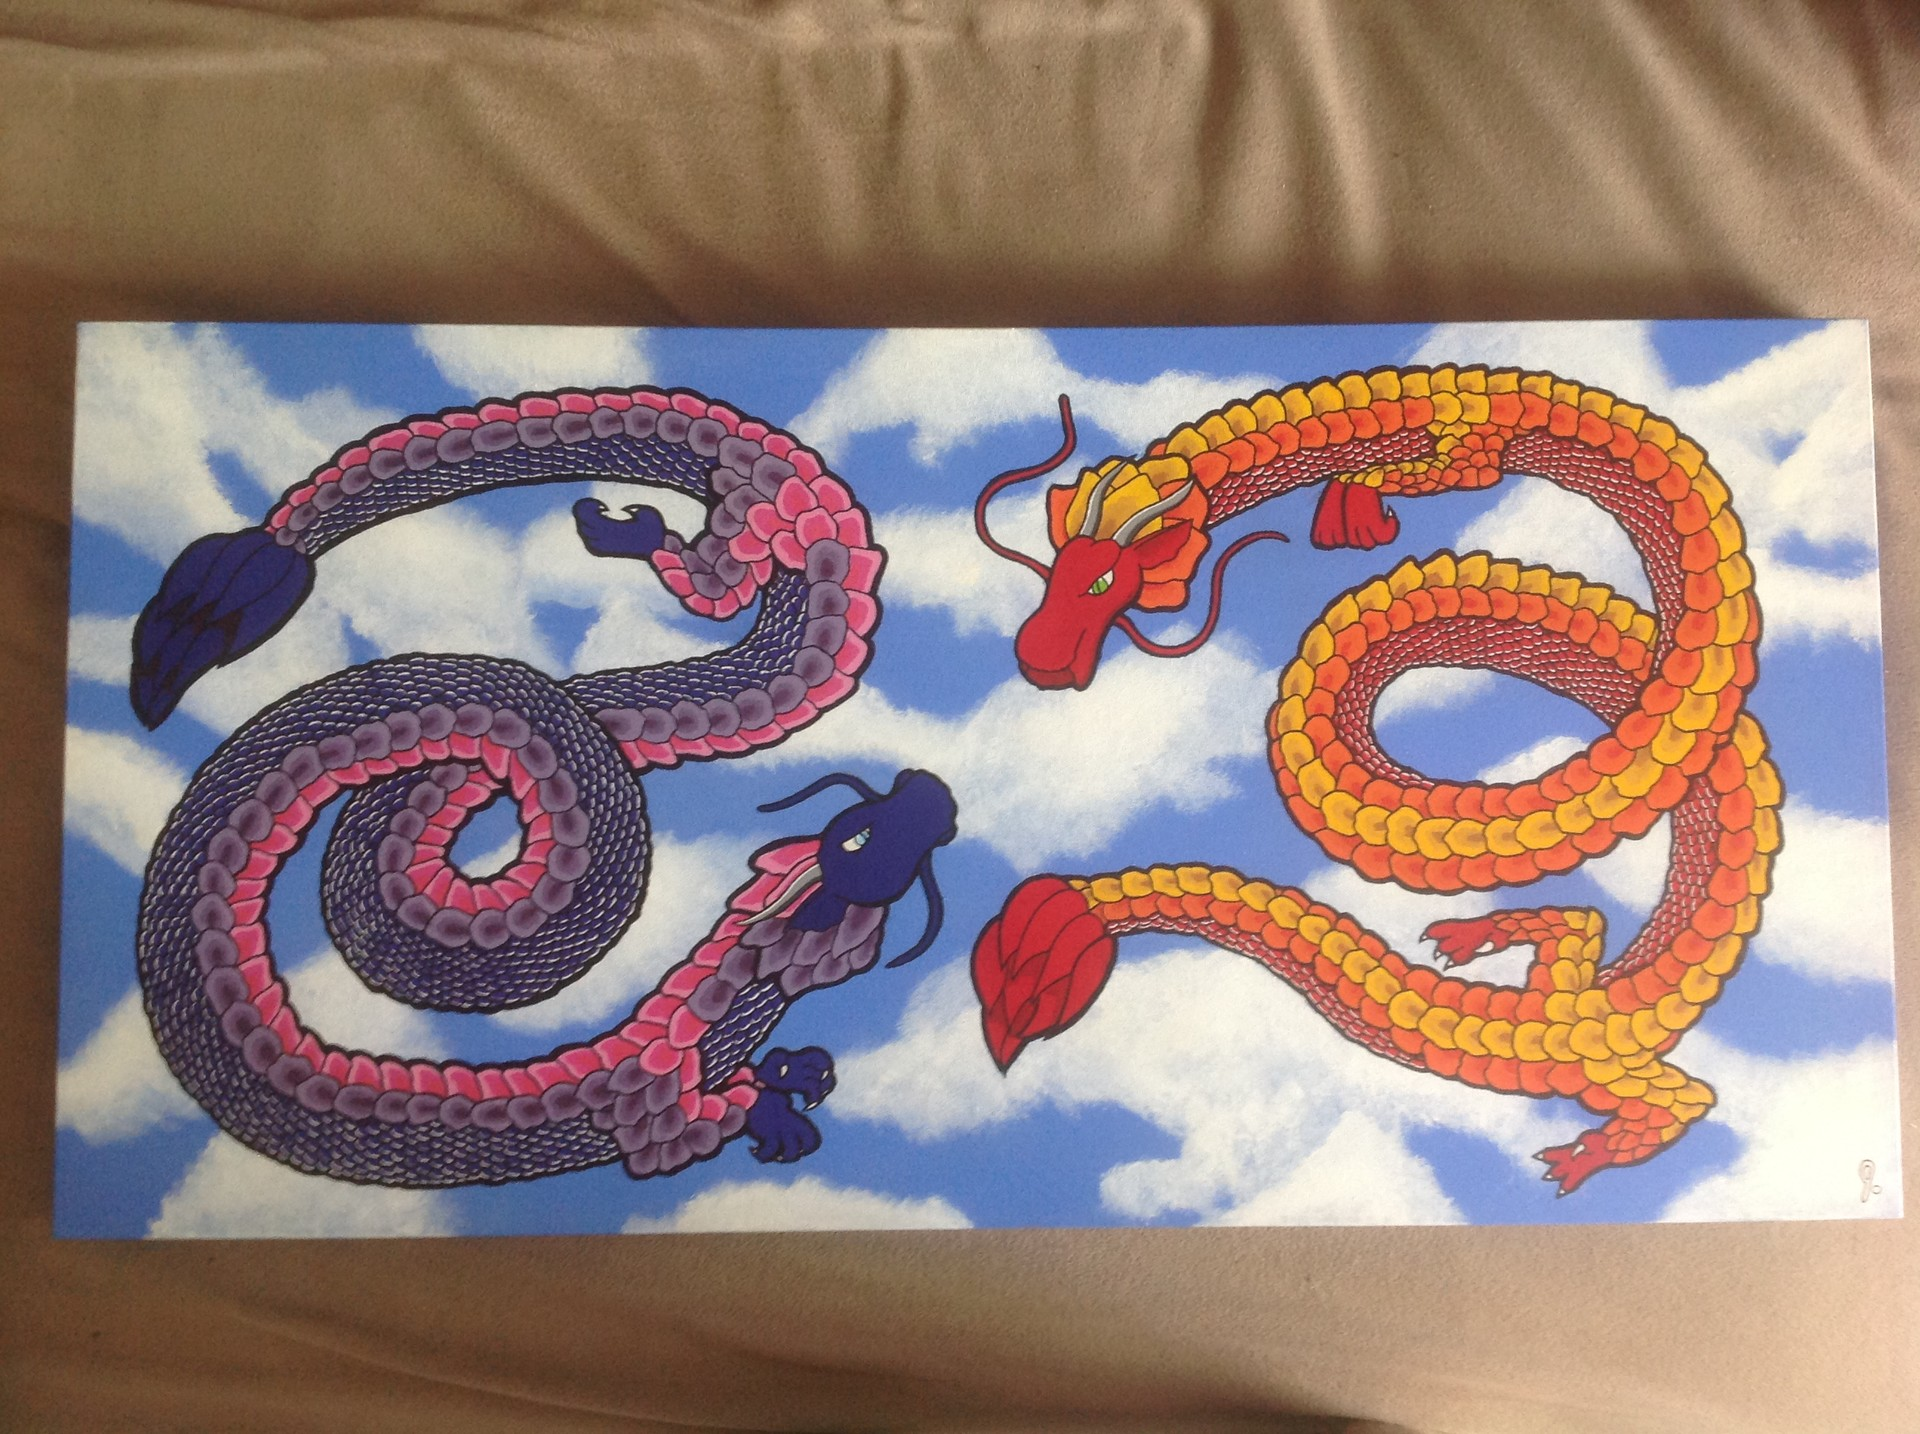 'Snapdragons'